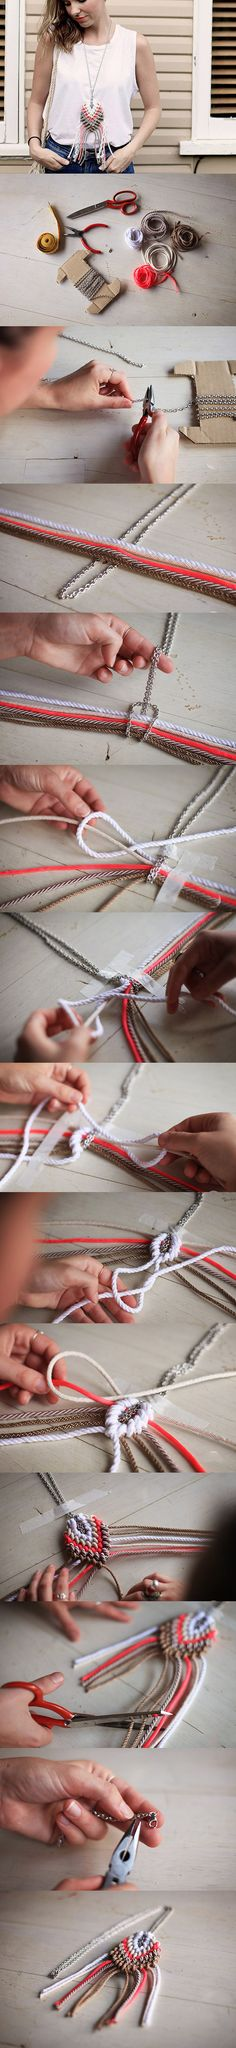 DIY: Jewelry Chains Cool Ideas #macrame #heart